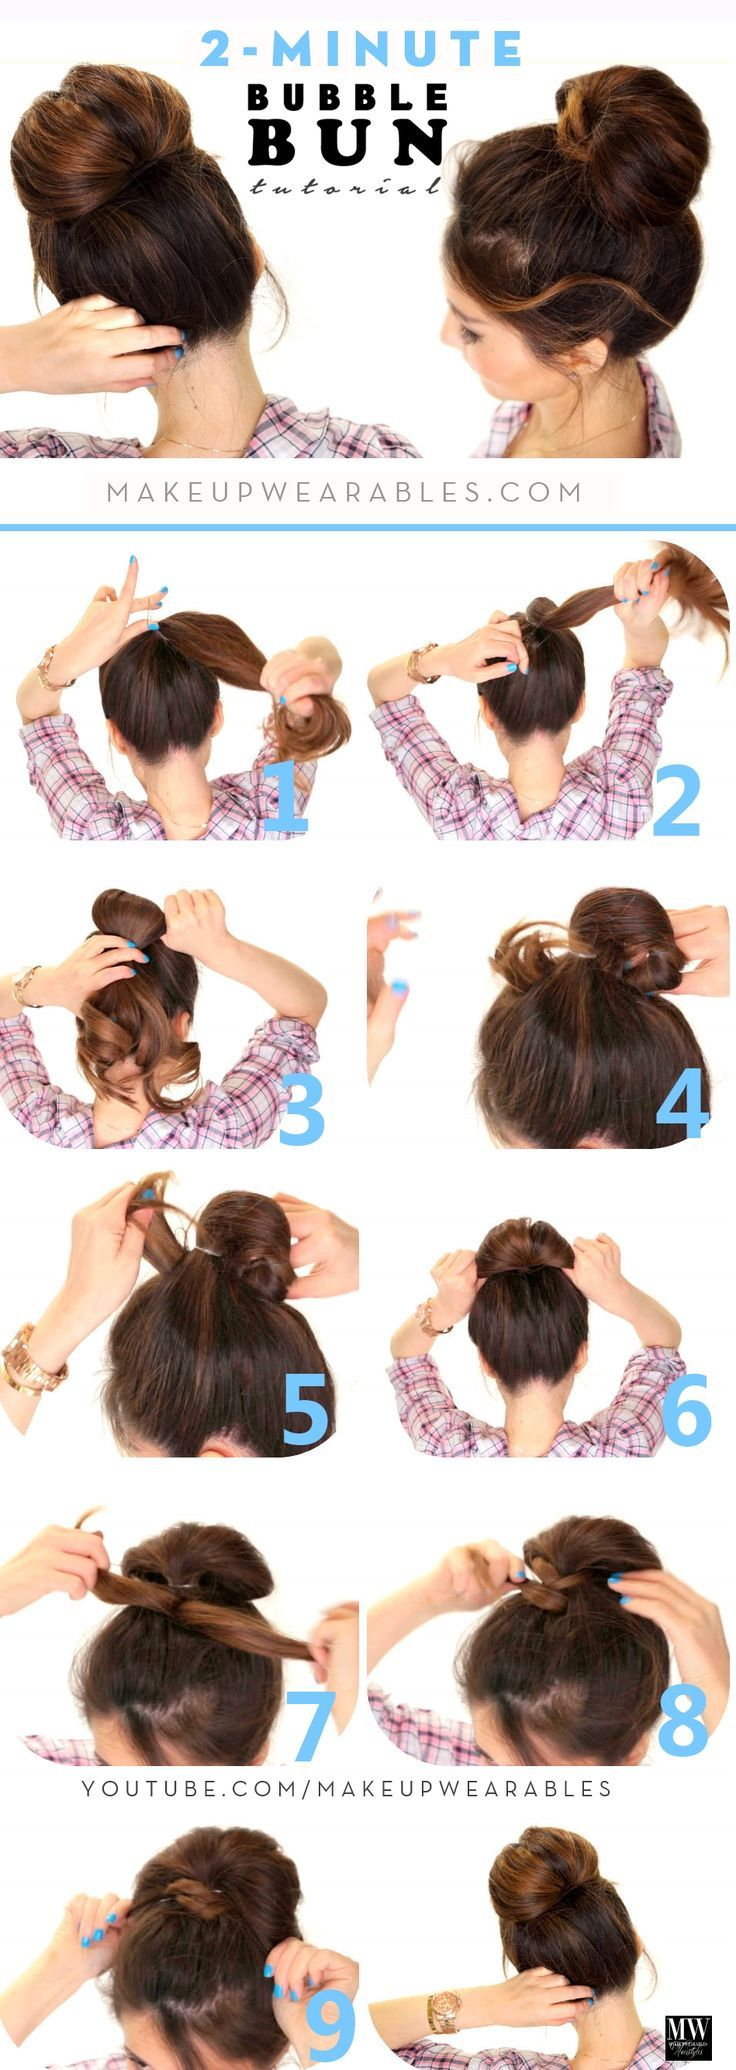 Astonishing 1000 Ideas About Easy Bun Hairstyles On Pinterest Easy Bun Bun Short Hairstyles Gunalazisus